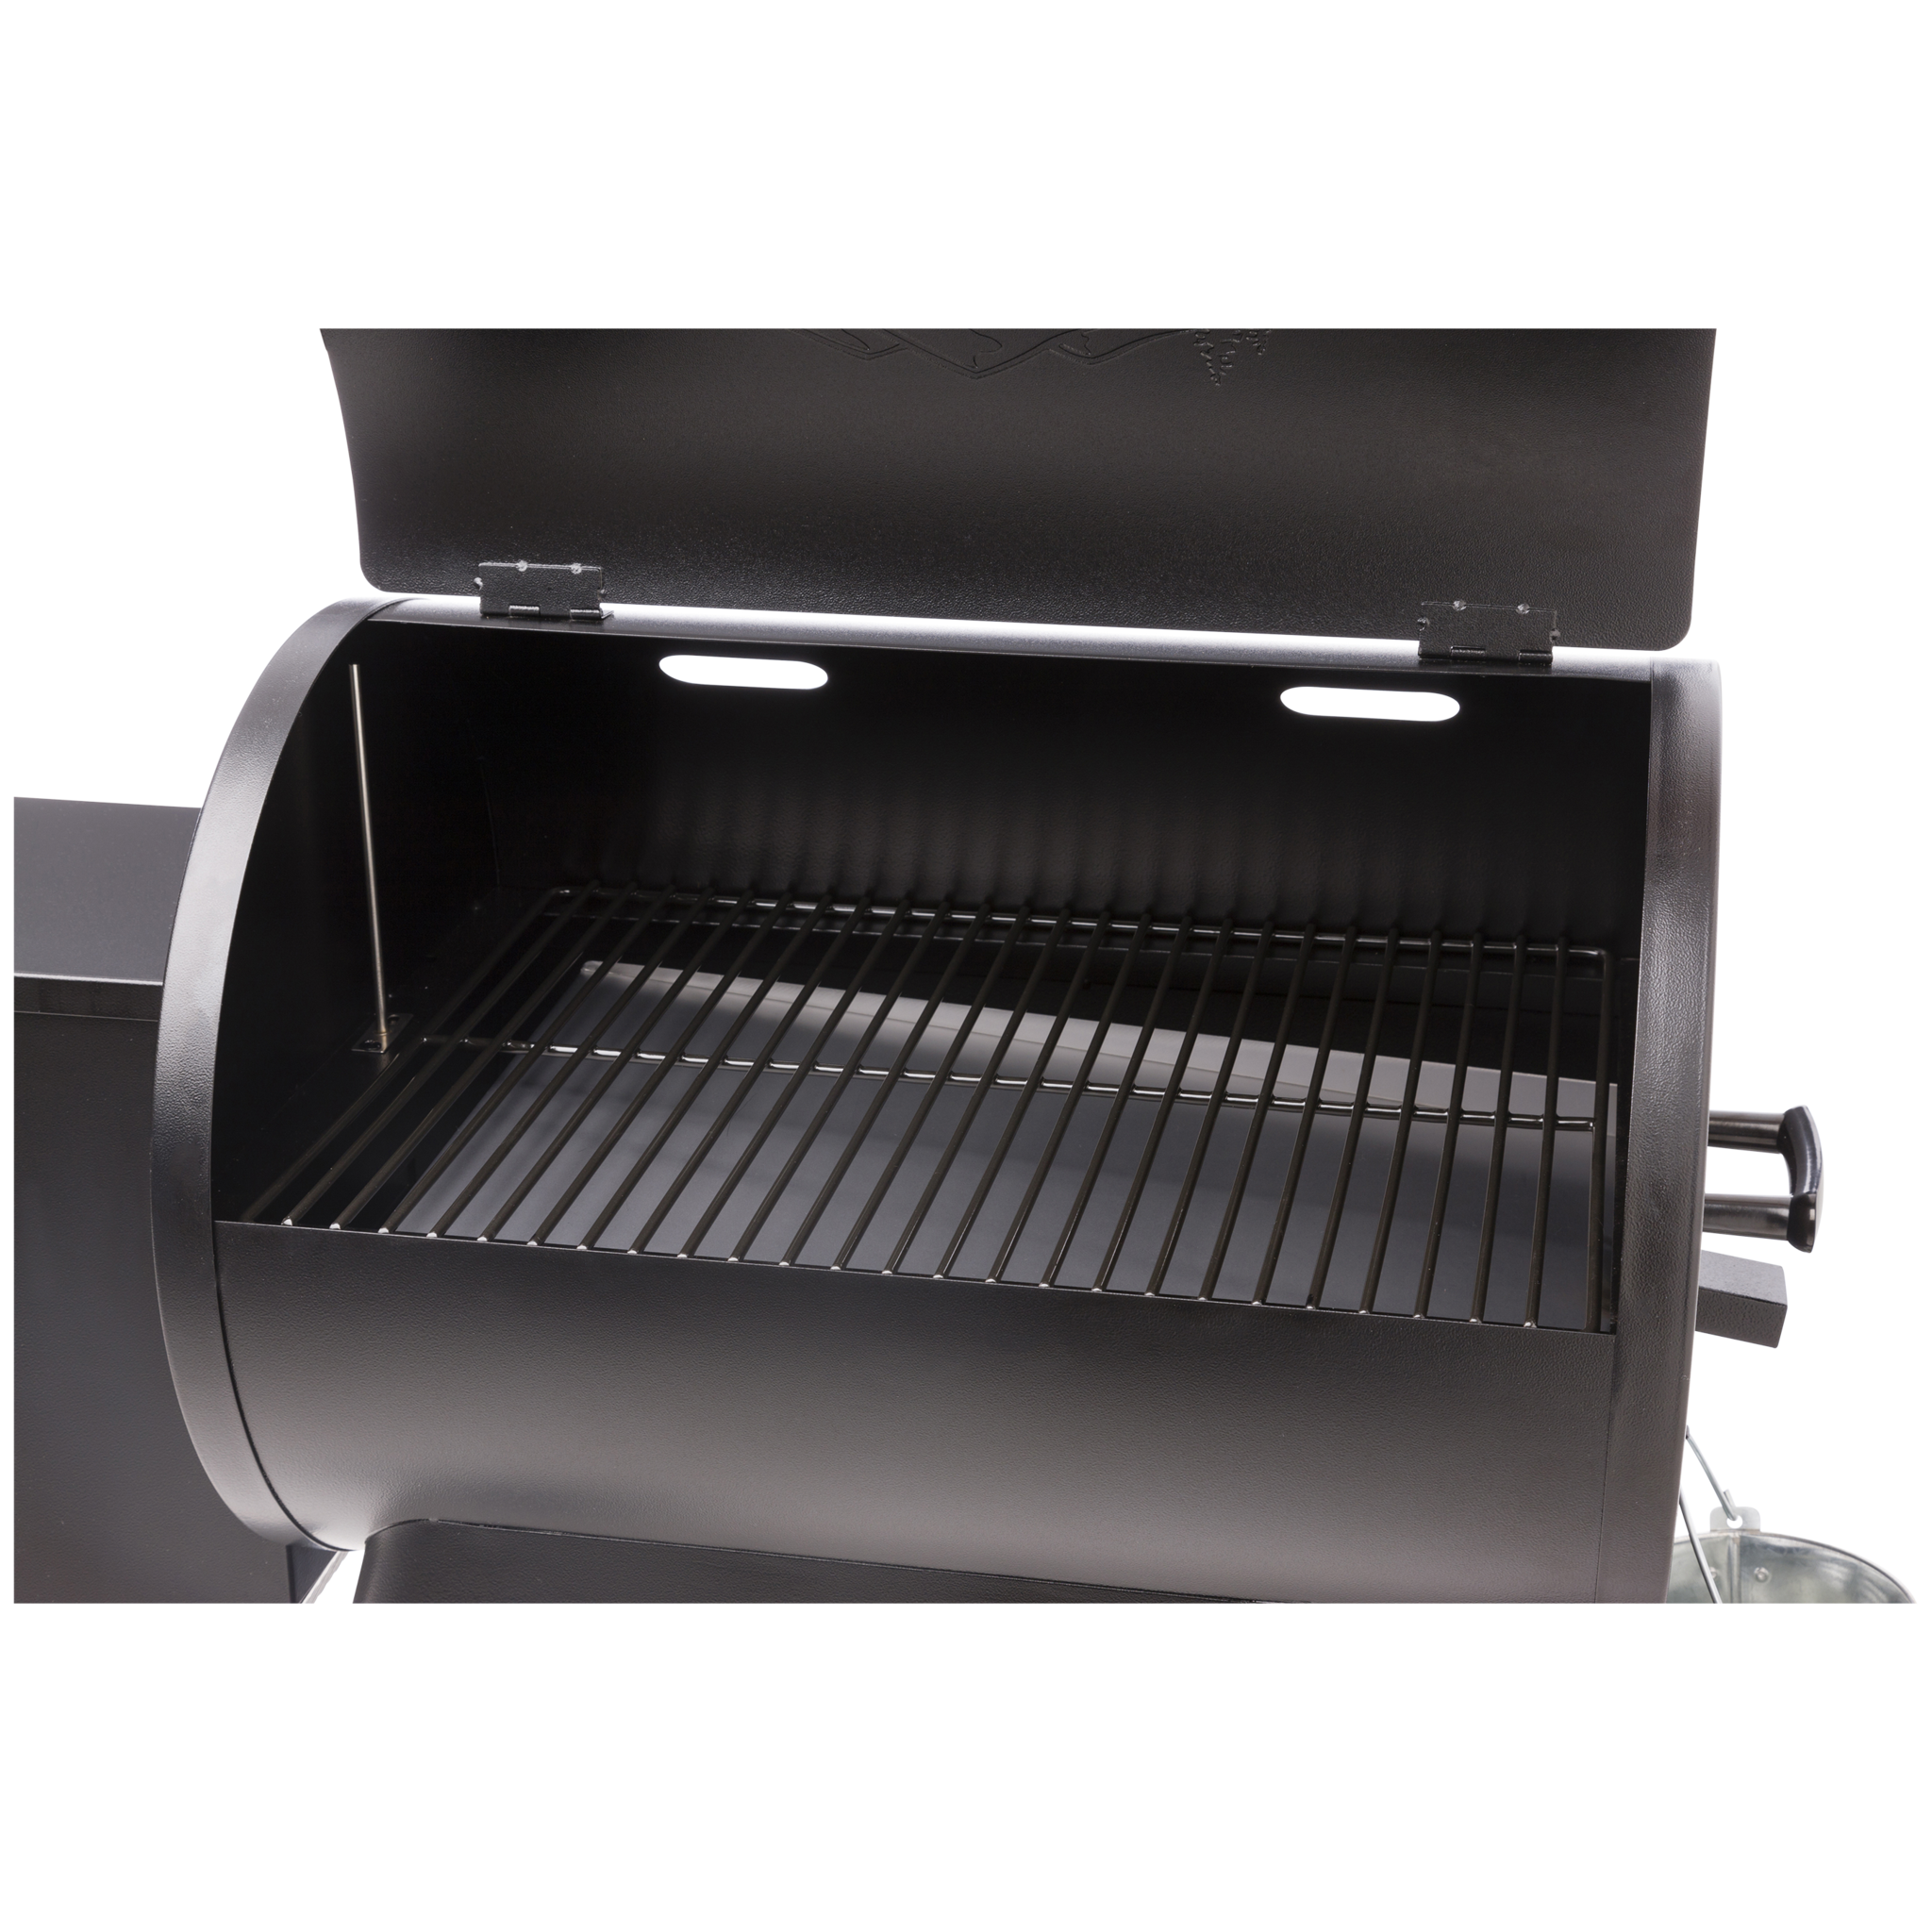 Traeger Tailgater Pro 20 on Cart, Blue